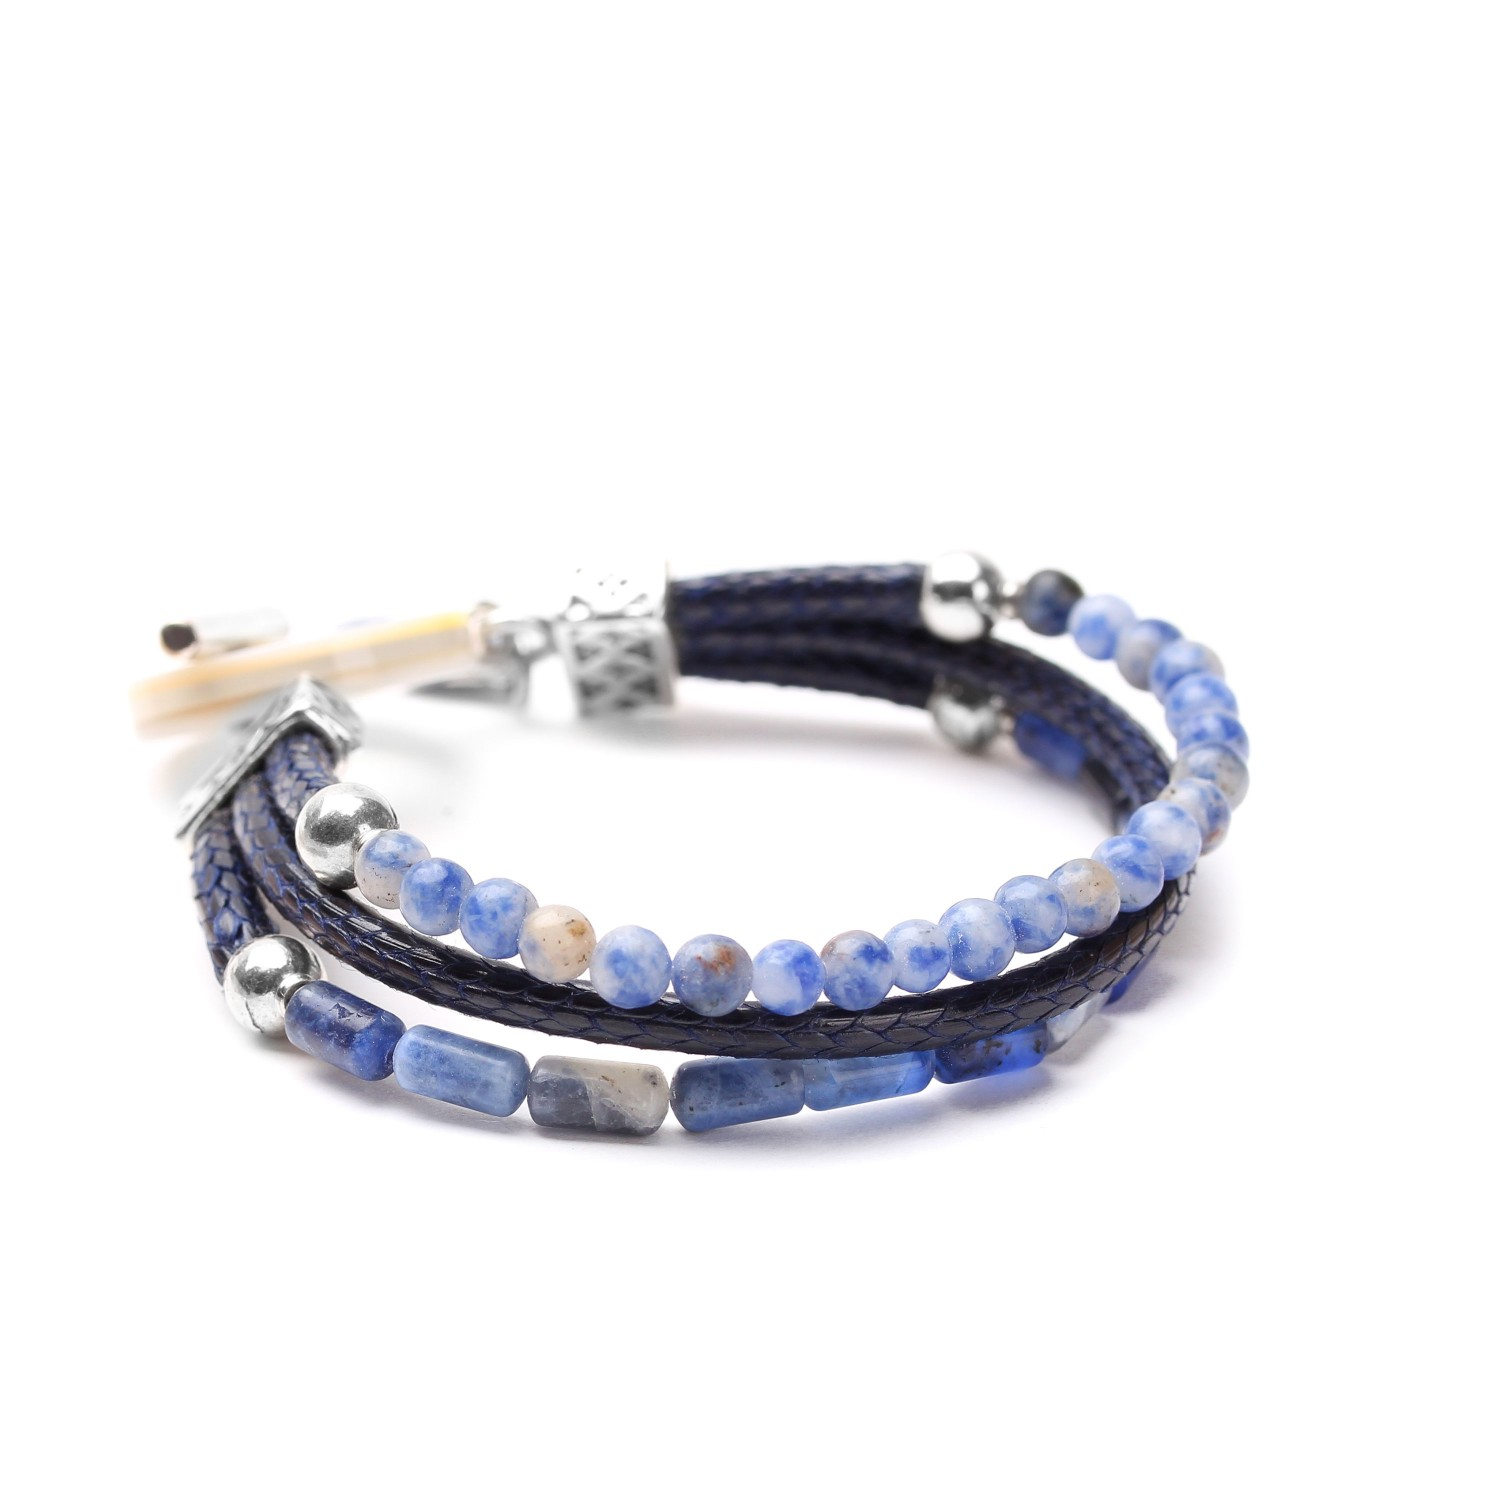 CYCLADES 3-row bracelet